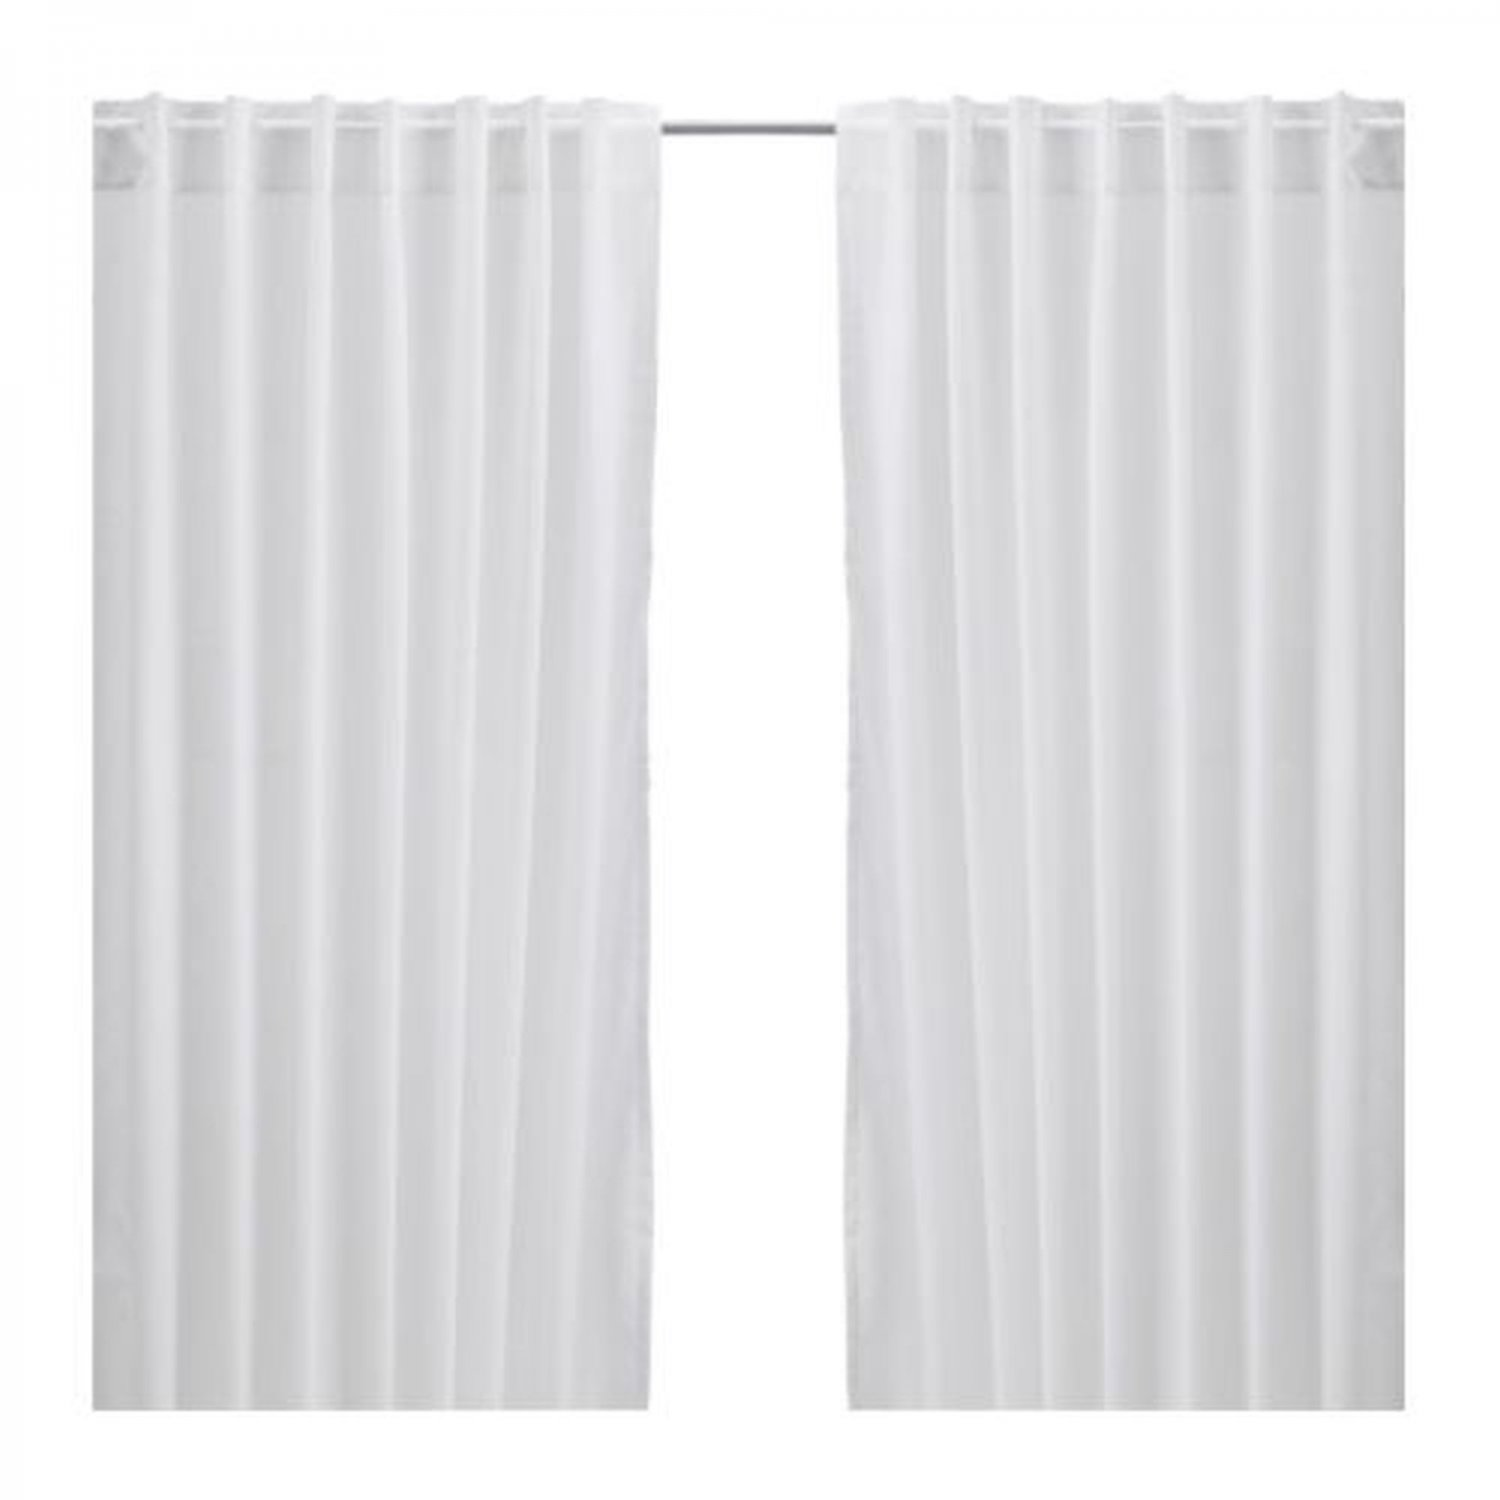 Black and white curtains bedroom - Bl Black Theater Curtains Black Curtain Png Ikea Vivan Curtains Drapes White 2 Panels